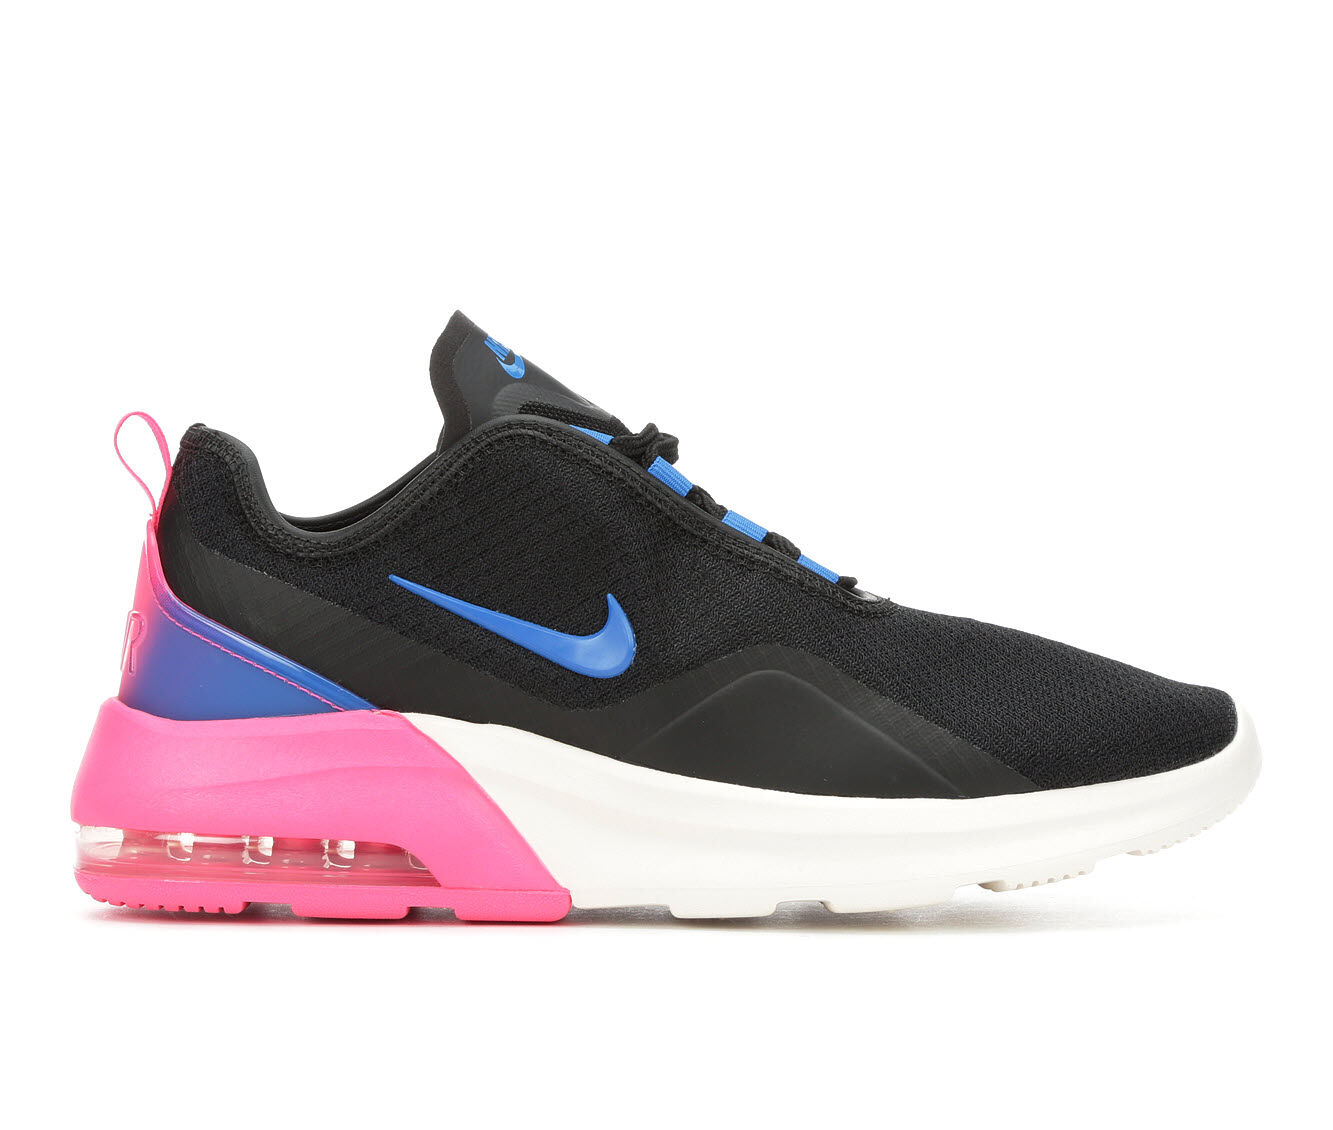 hot sale Women's Nike Air Max Motion 2 Sneakers Black/Blue/Pink